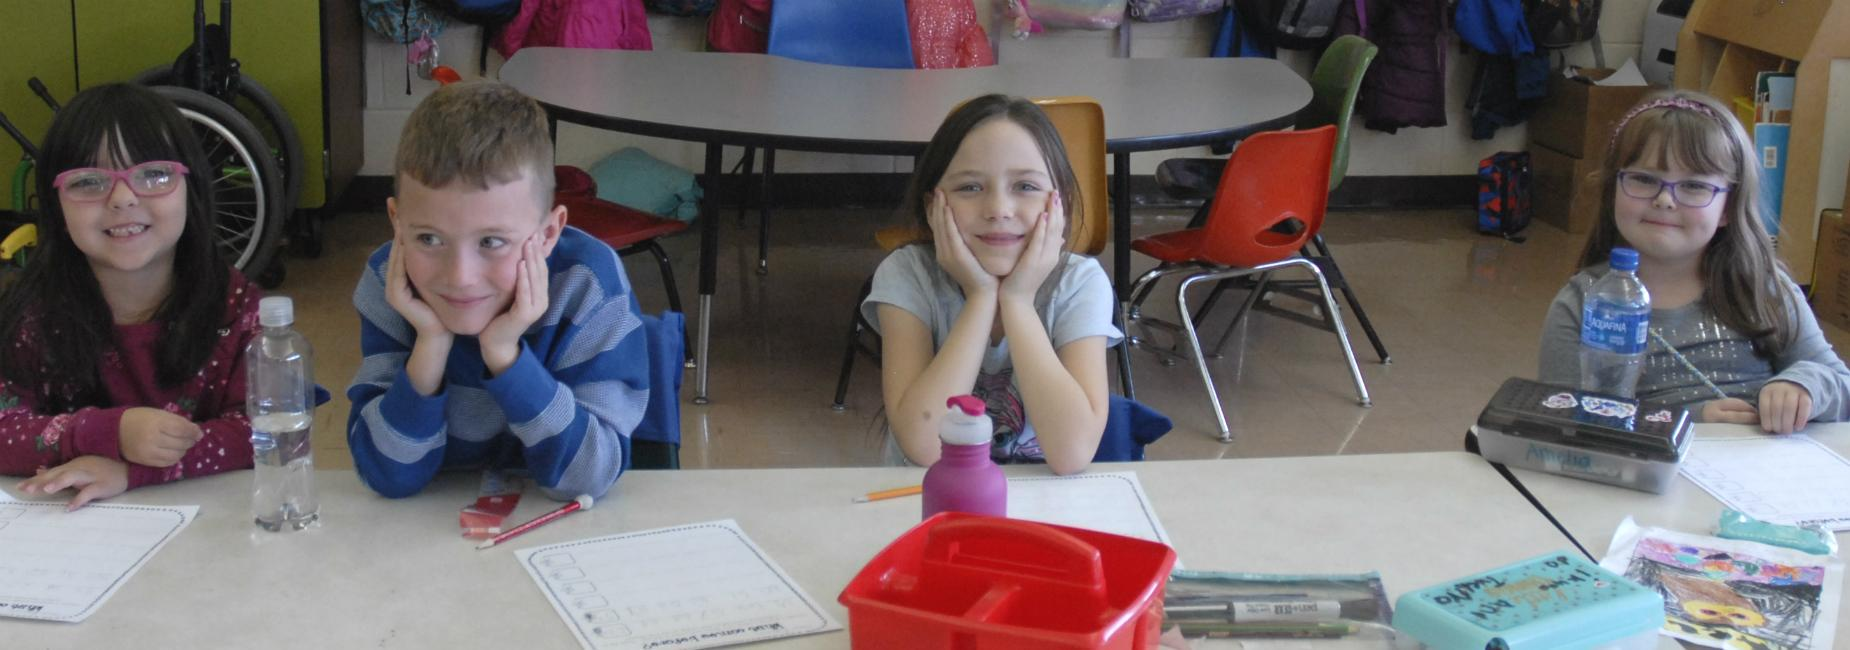 First grade students sitting at desks, smiling for camera